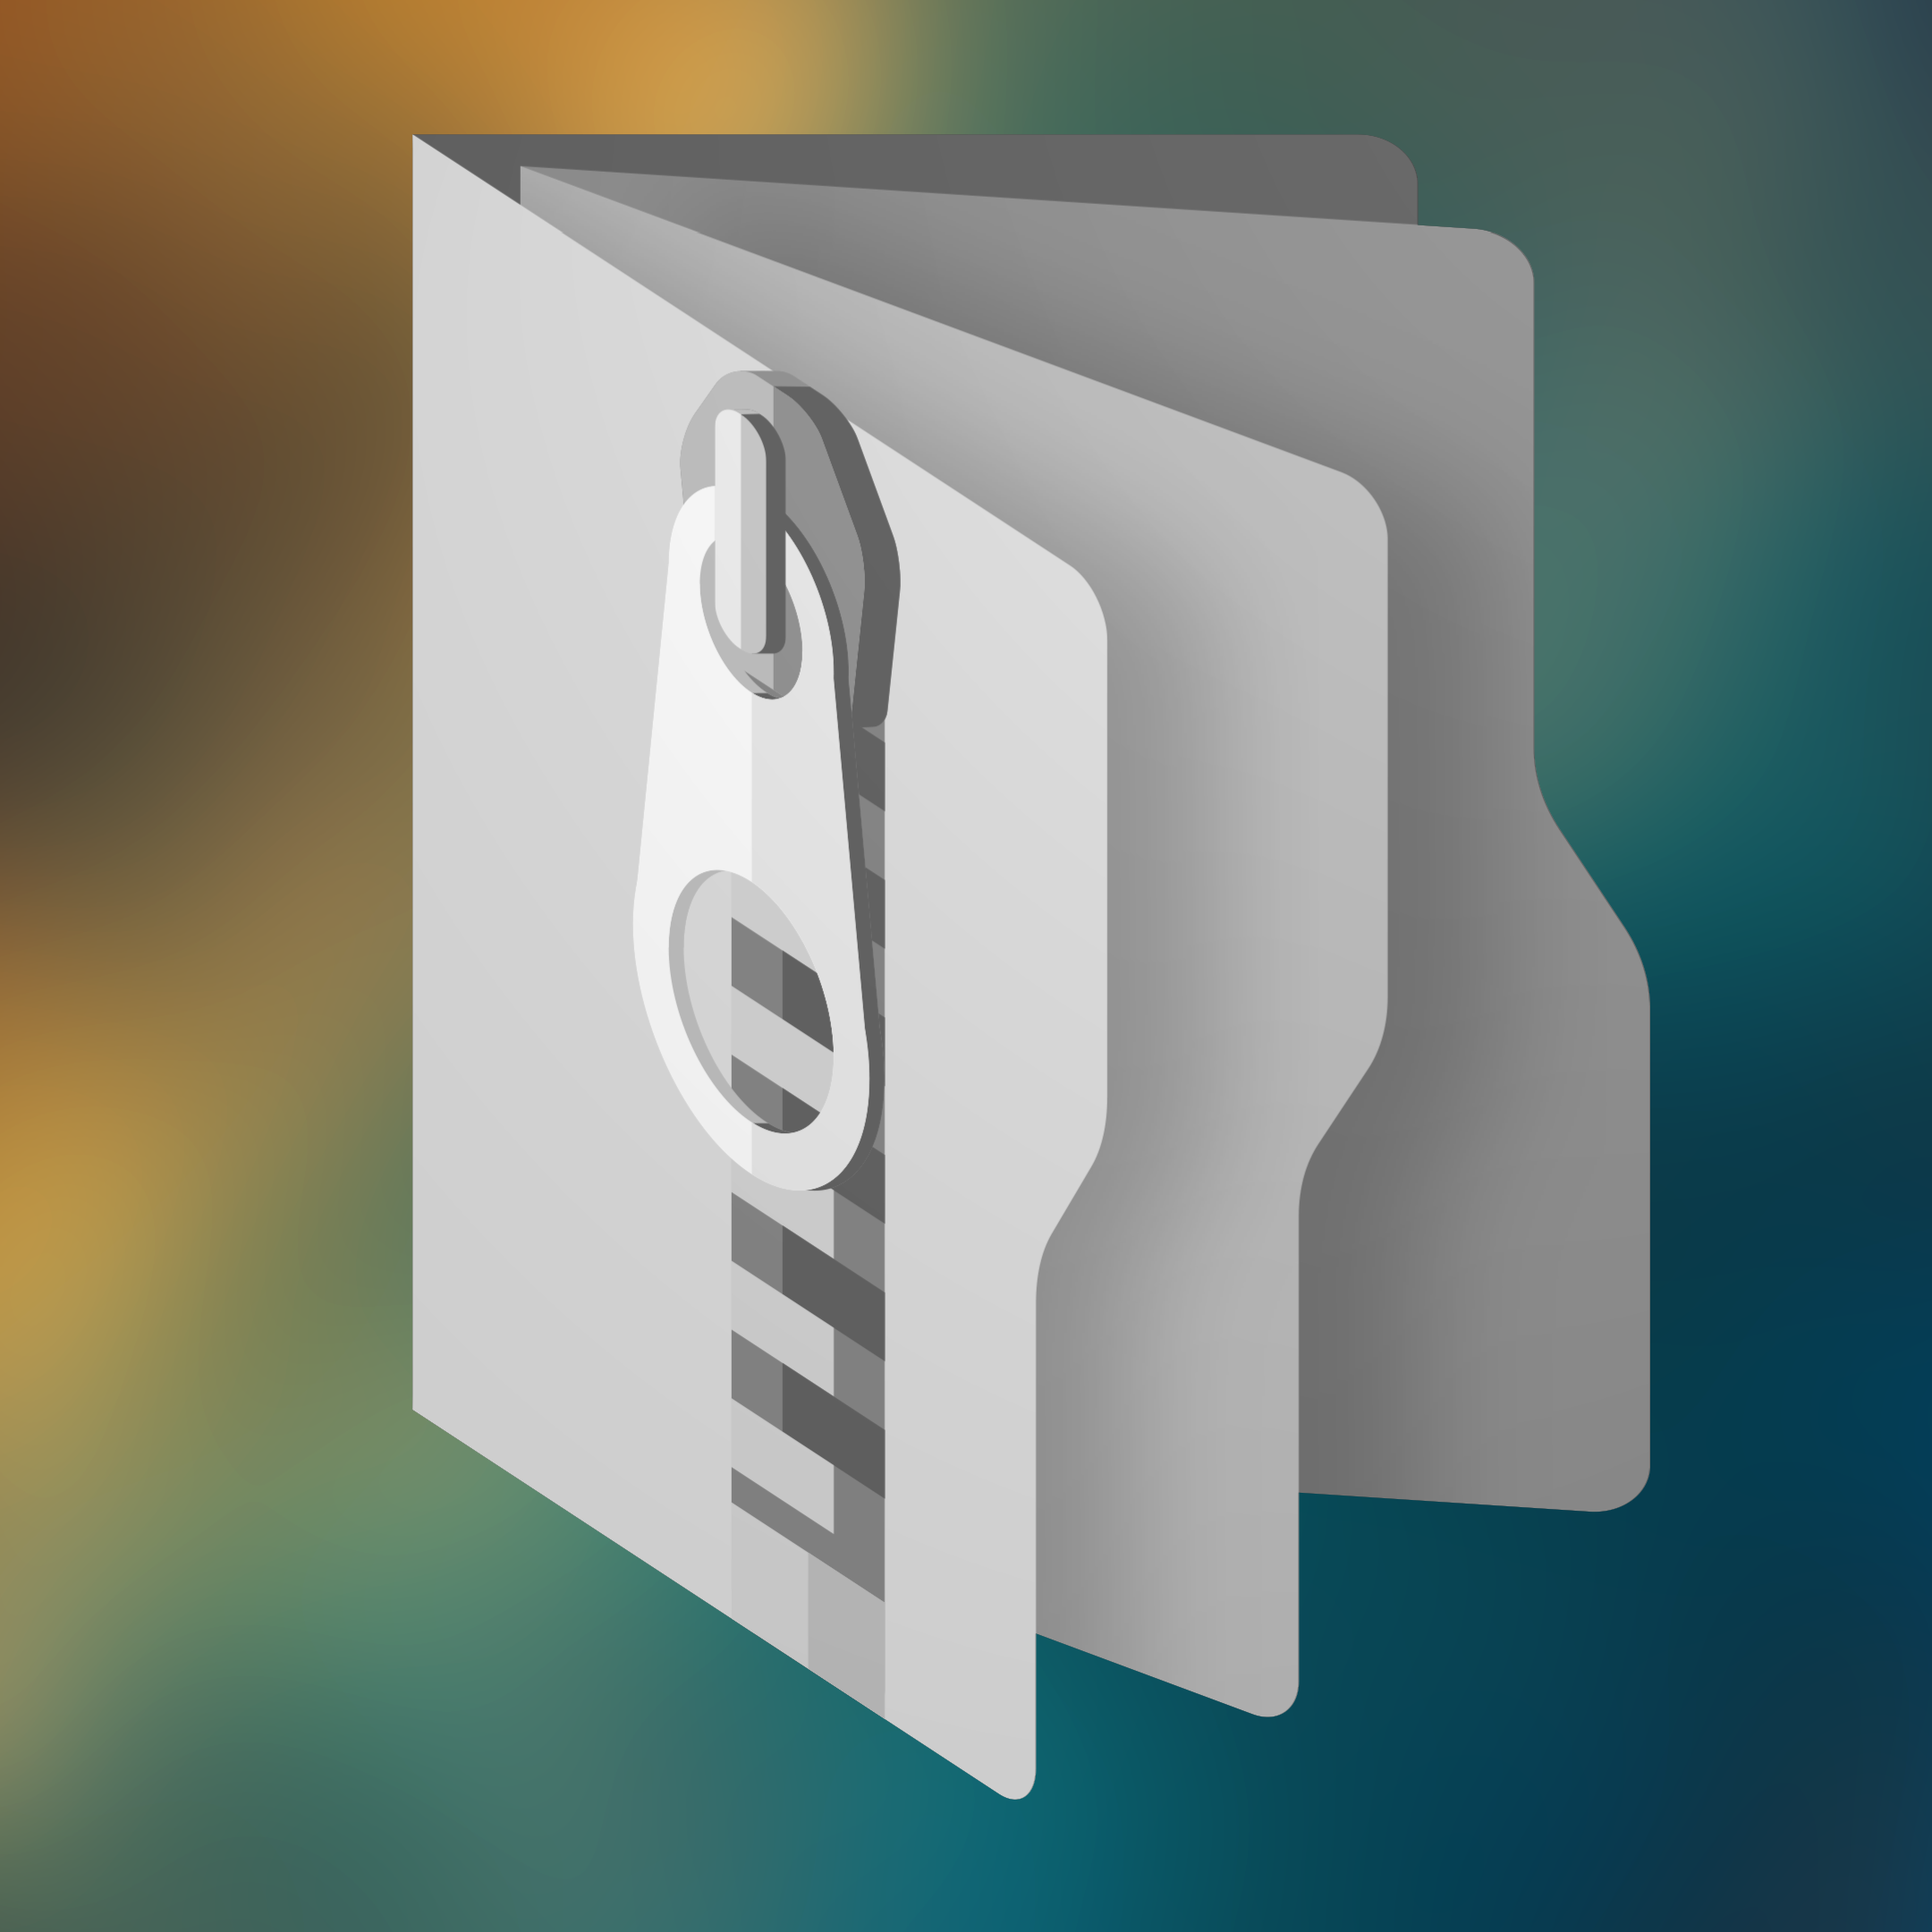 WinOpener - WinOpener is an all-in-one file and archive manager for Windows 10. Extract archives and preview files in a beautiful, Fluent interface.